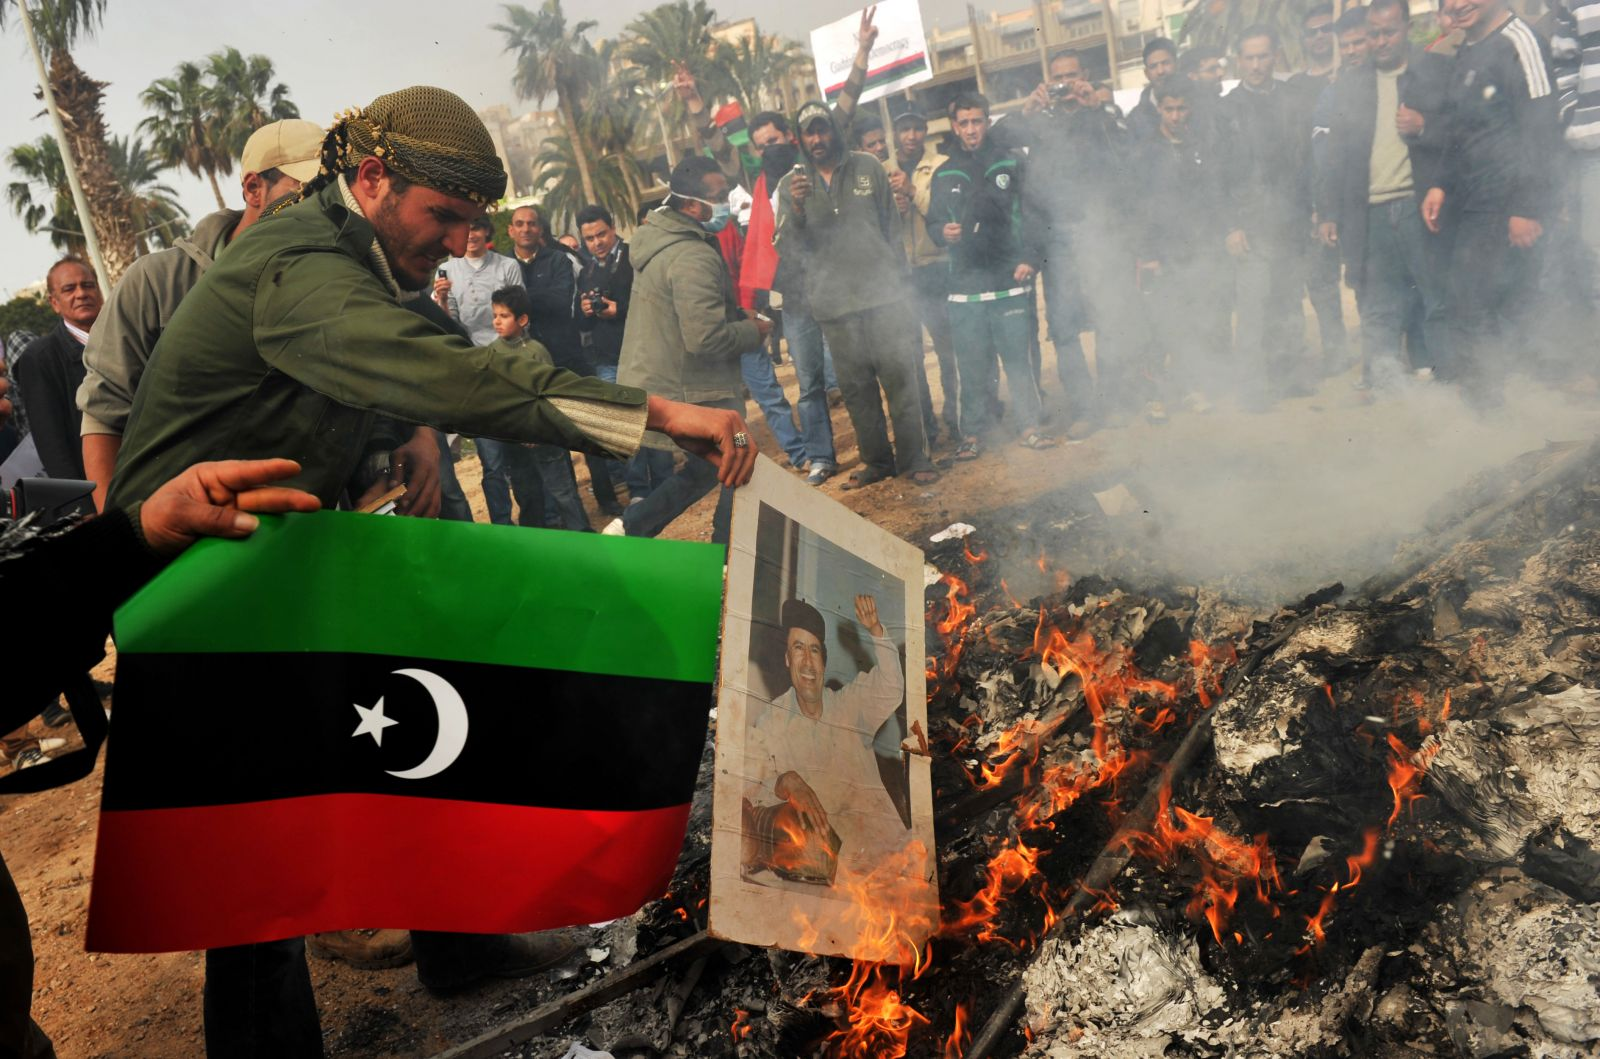 No easy options for West to dislodge IS from Libya: analysts